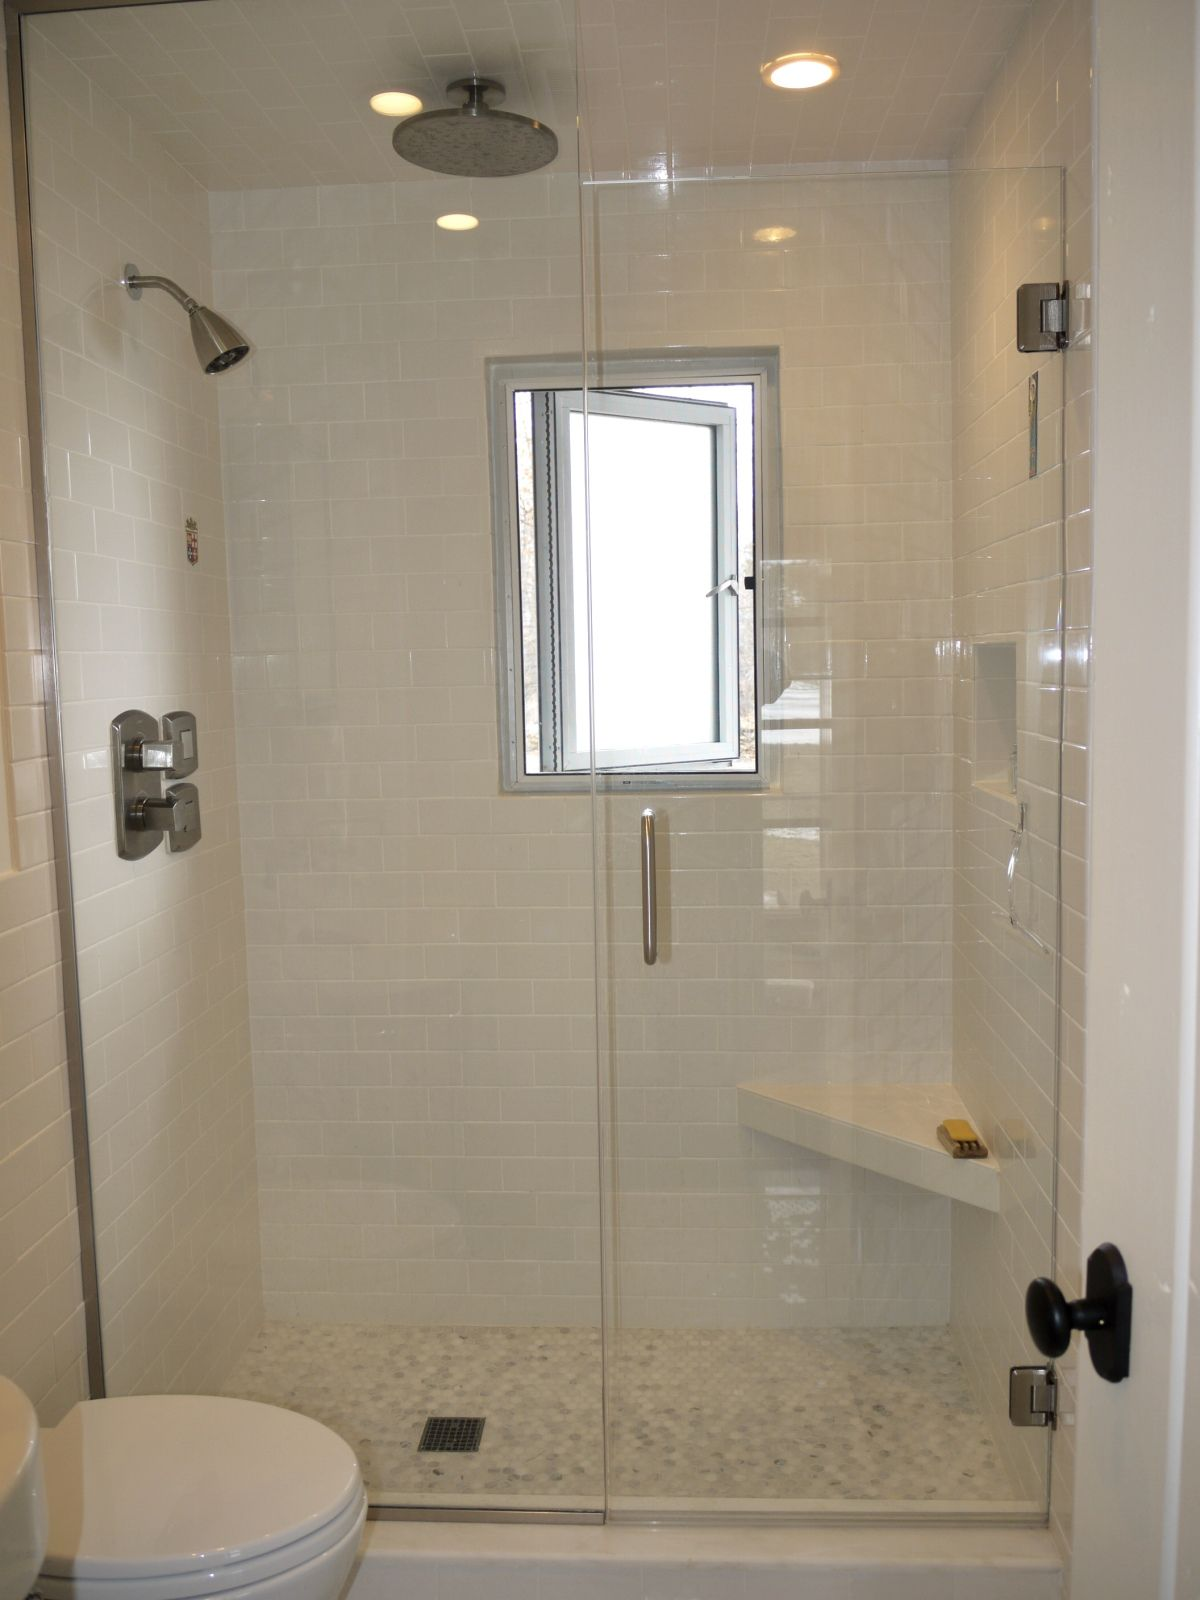 How To Tile A Shower Simple Bathroom Remodel Inexpensive Bathroom Remodel Guest Bathroom Remodel